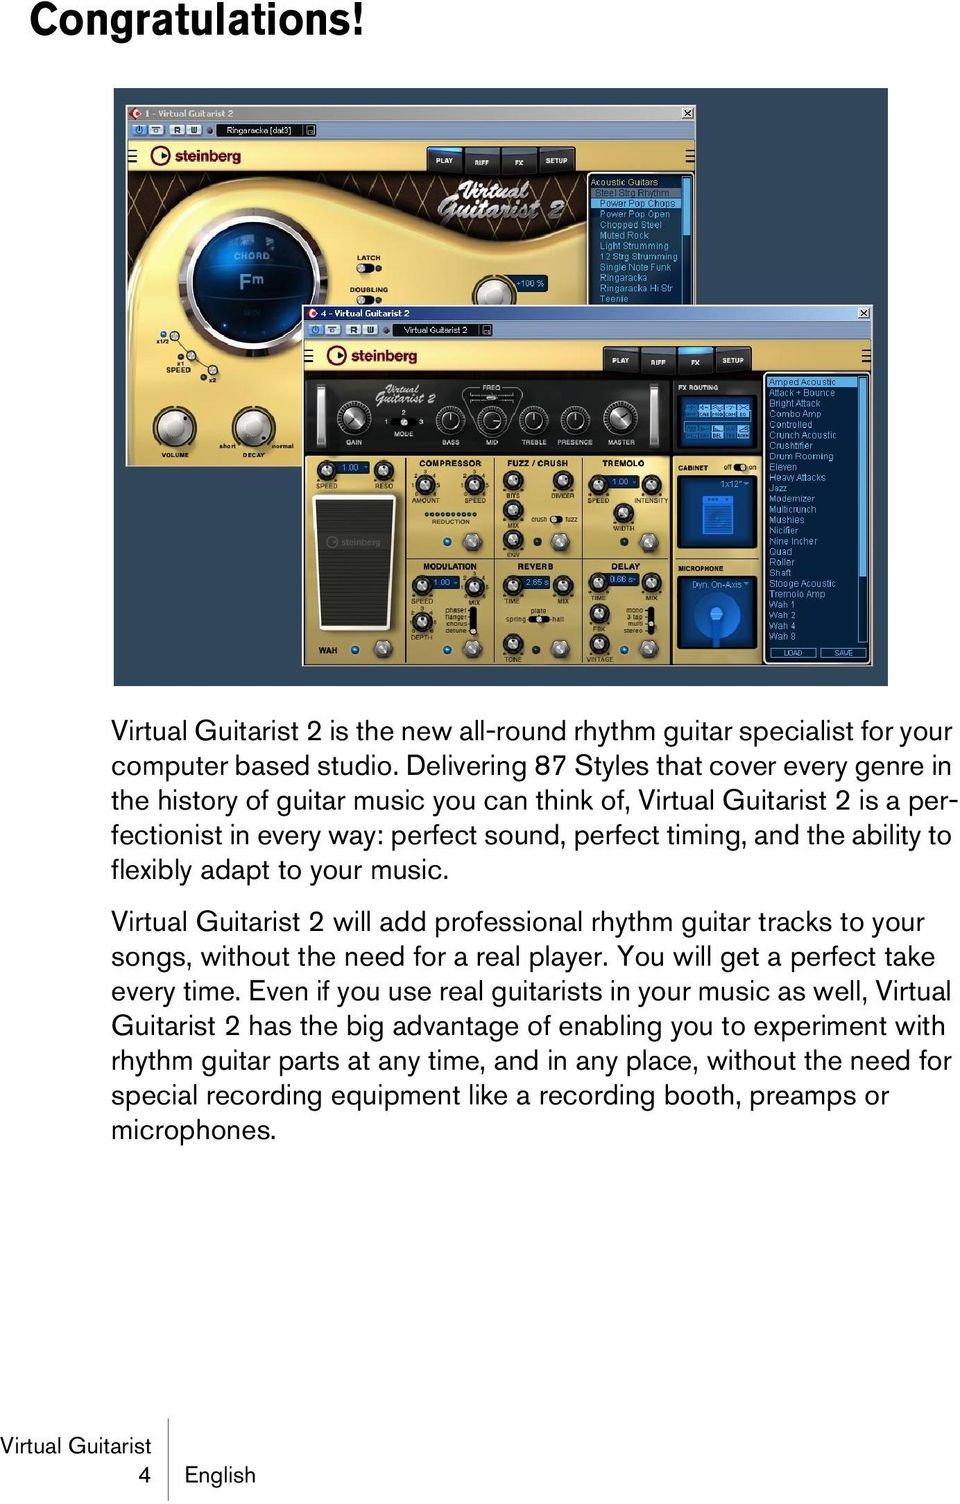 flexibly adapt to your music. 2 will add professional rhythm guitar tracks to your songs, without the need for a real player. You will get a perfect take every time.